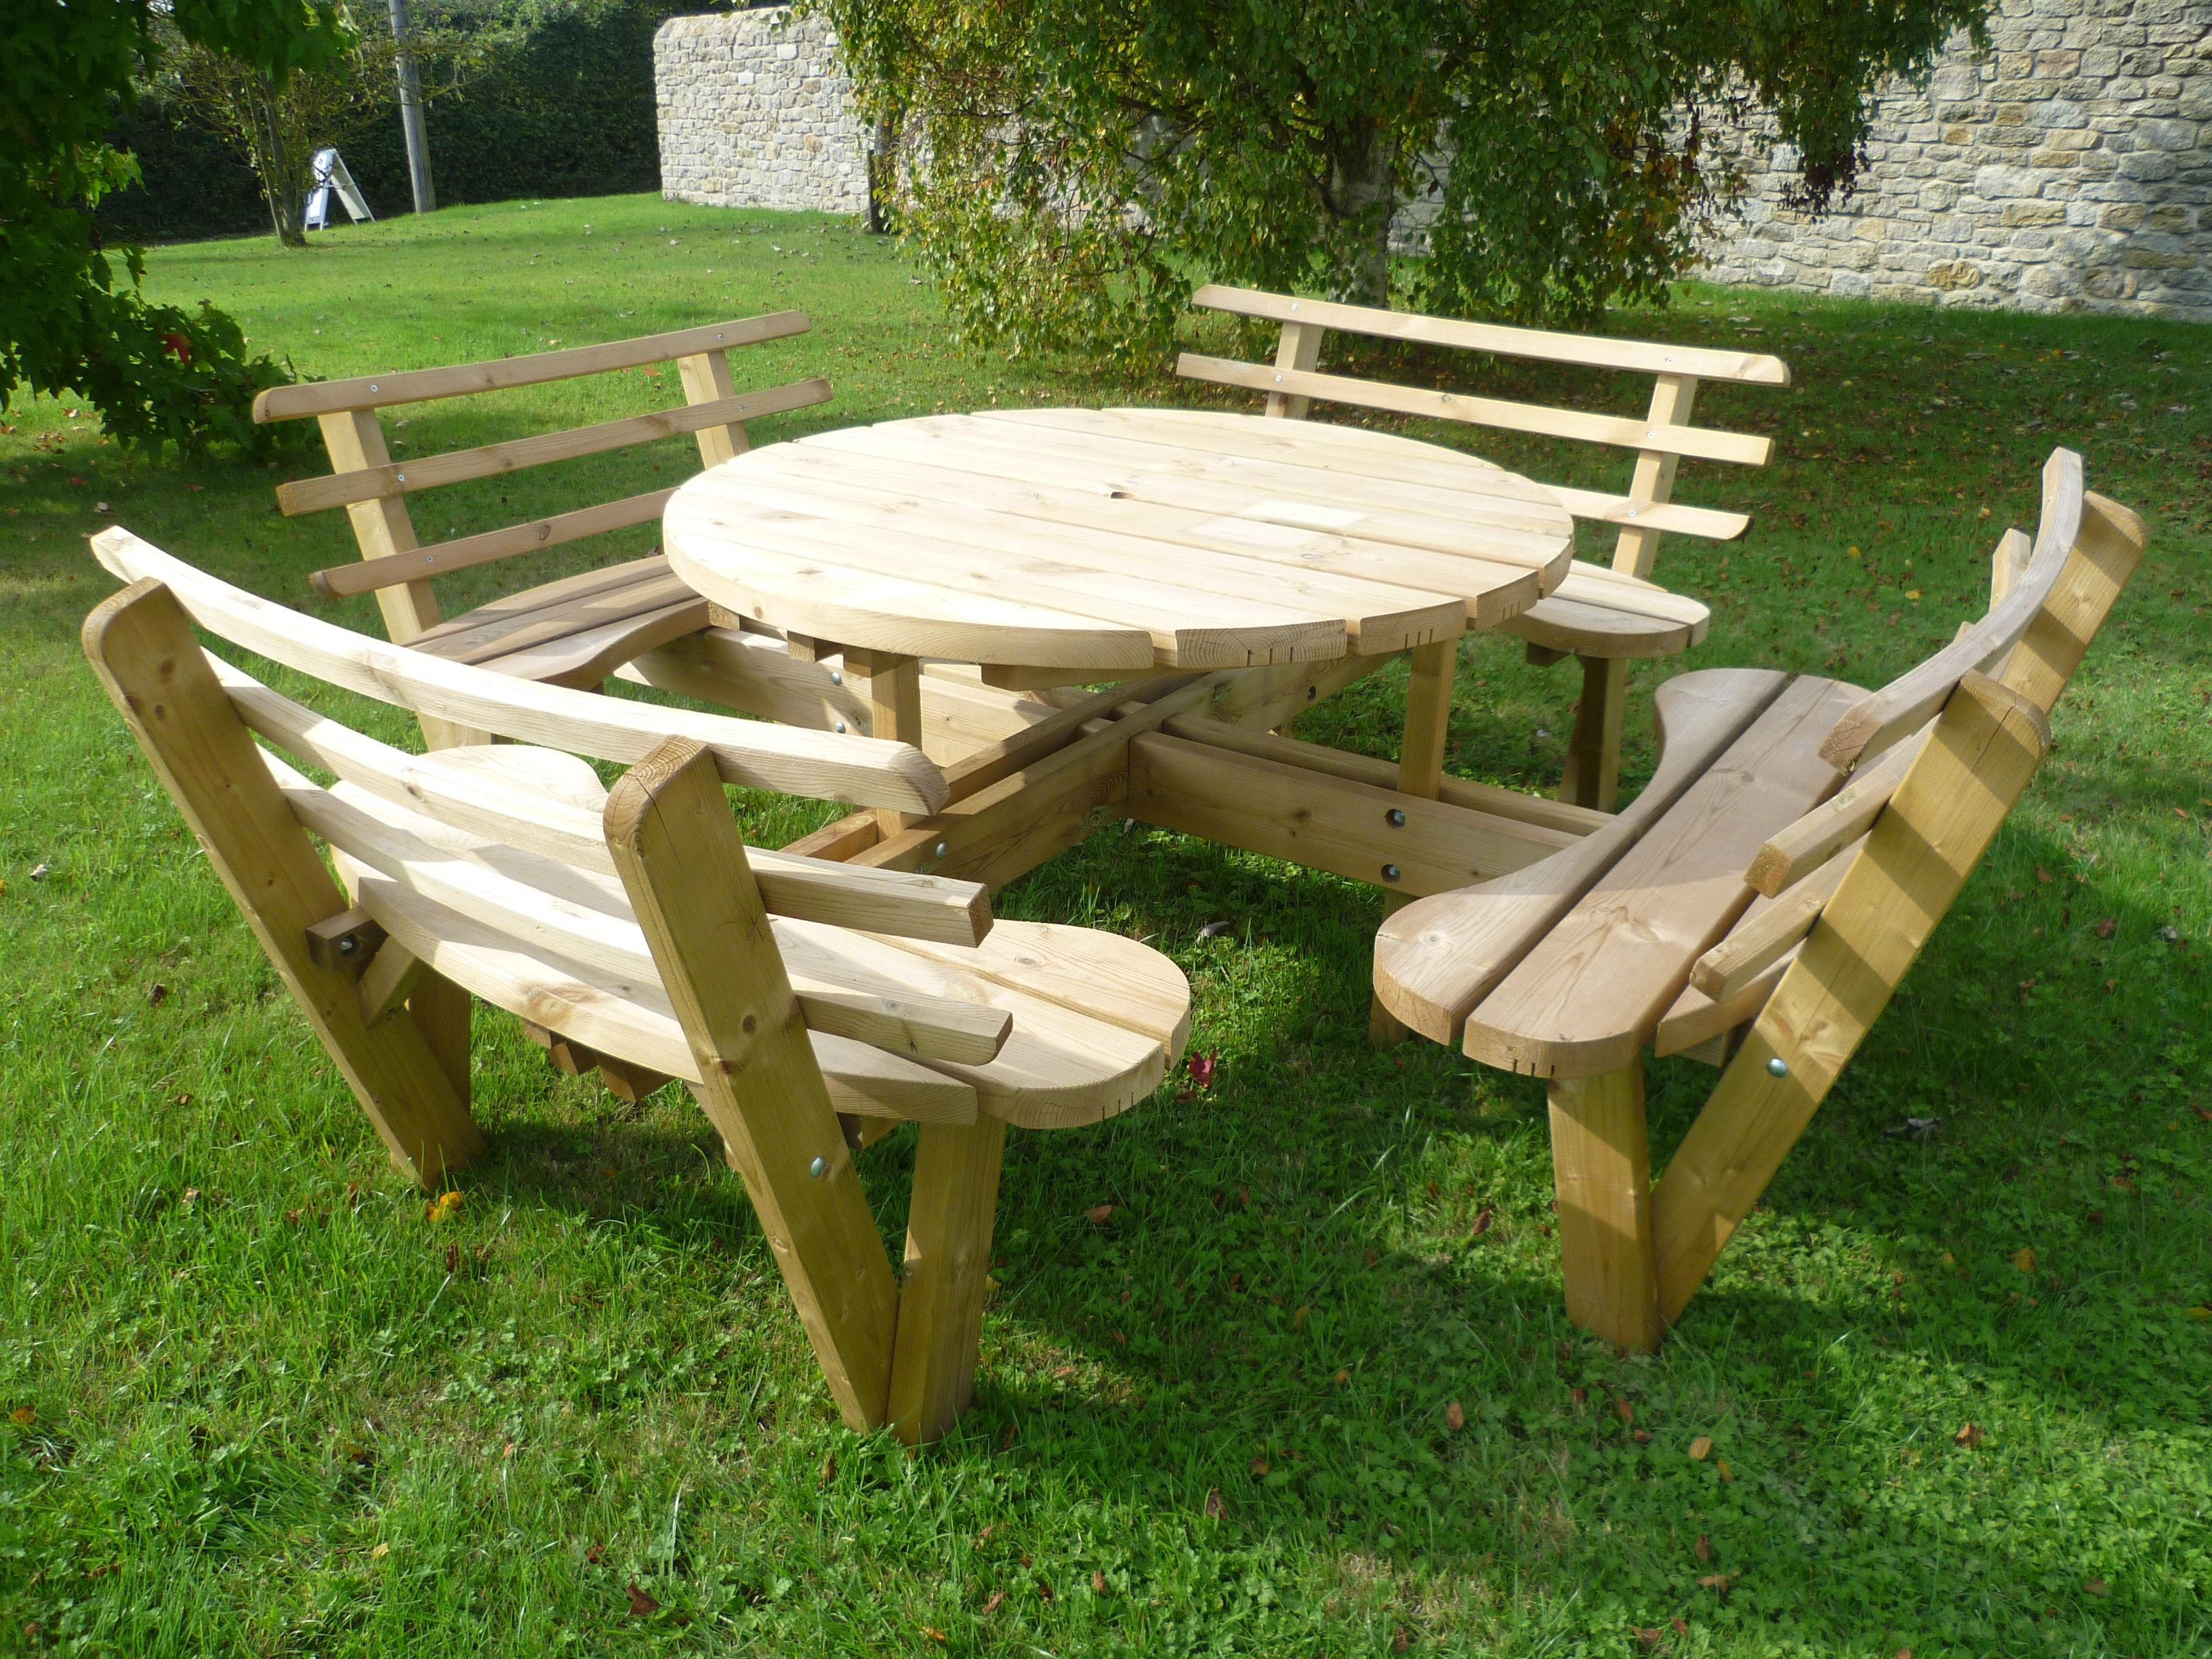 Round Wooden Picnic Table With Seat Backs